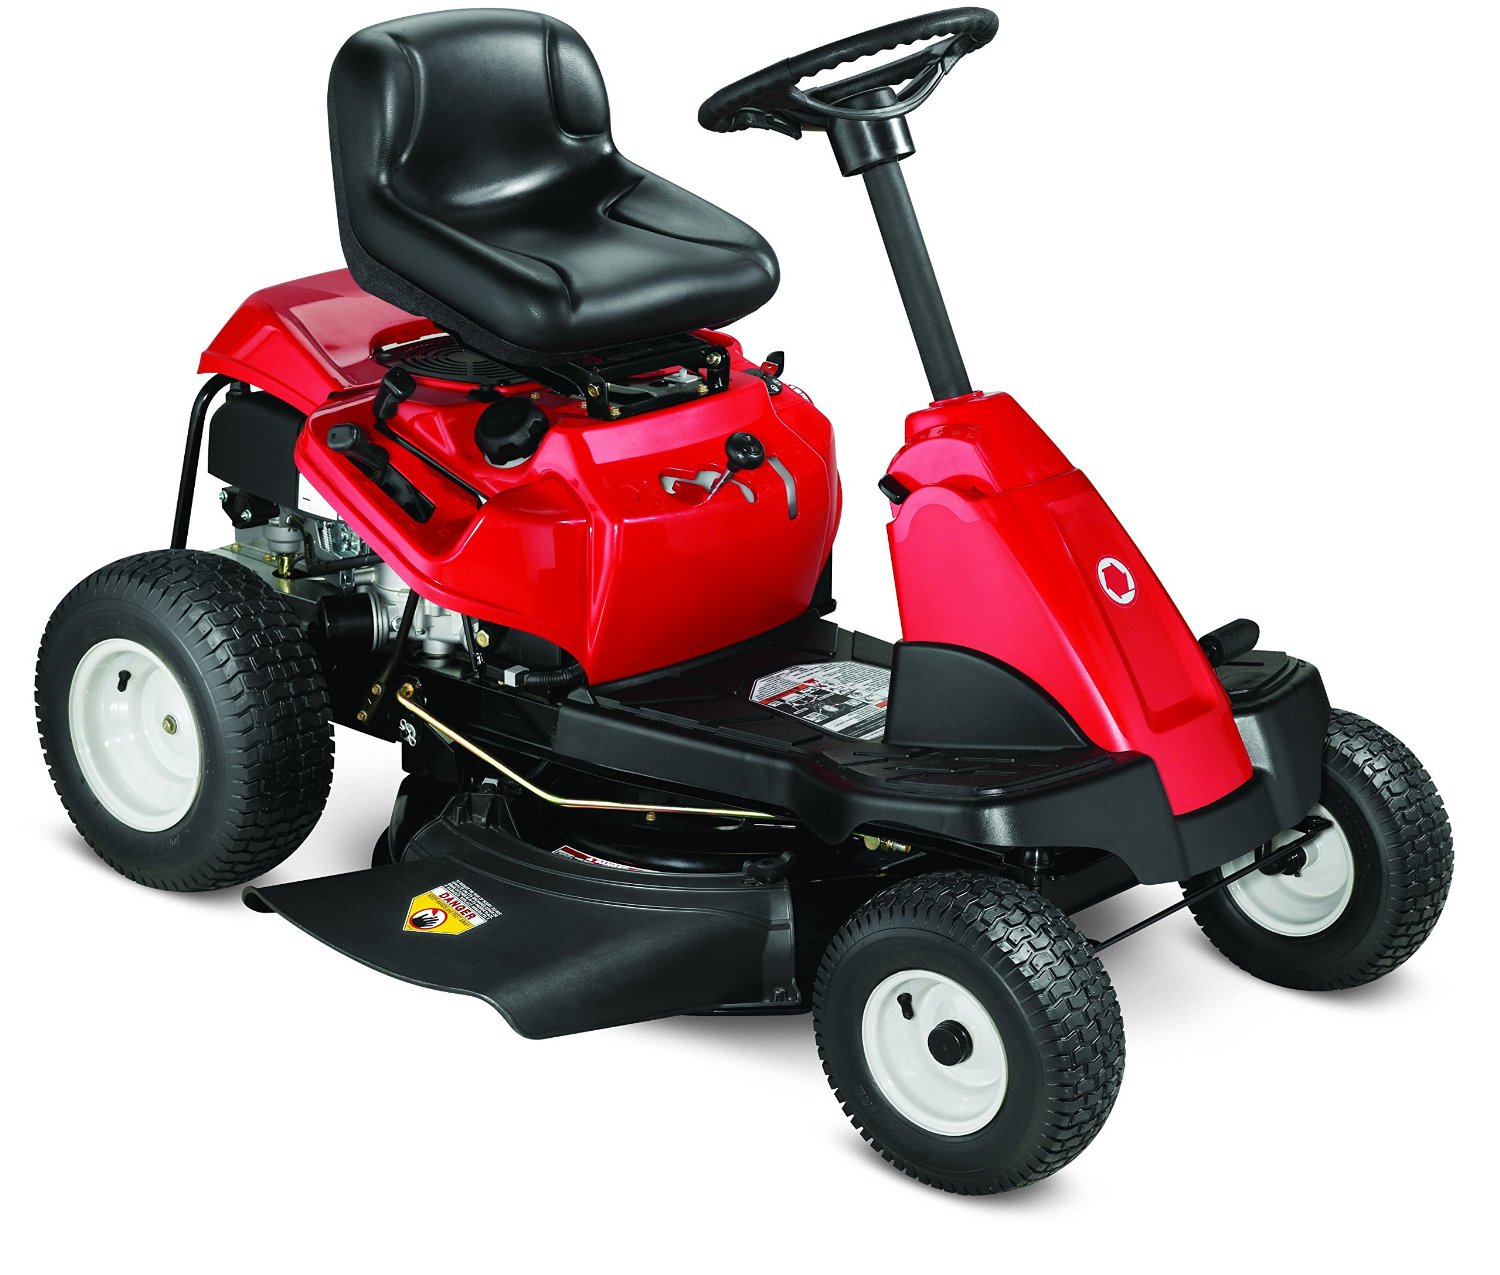 troy-bilt riding mower review